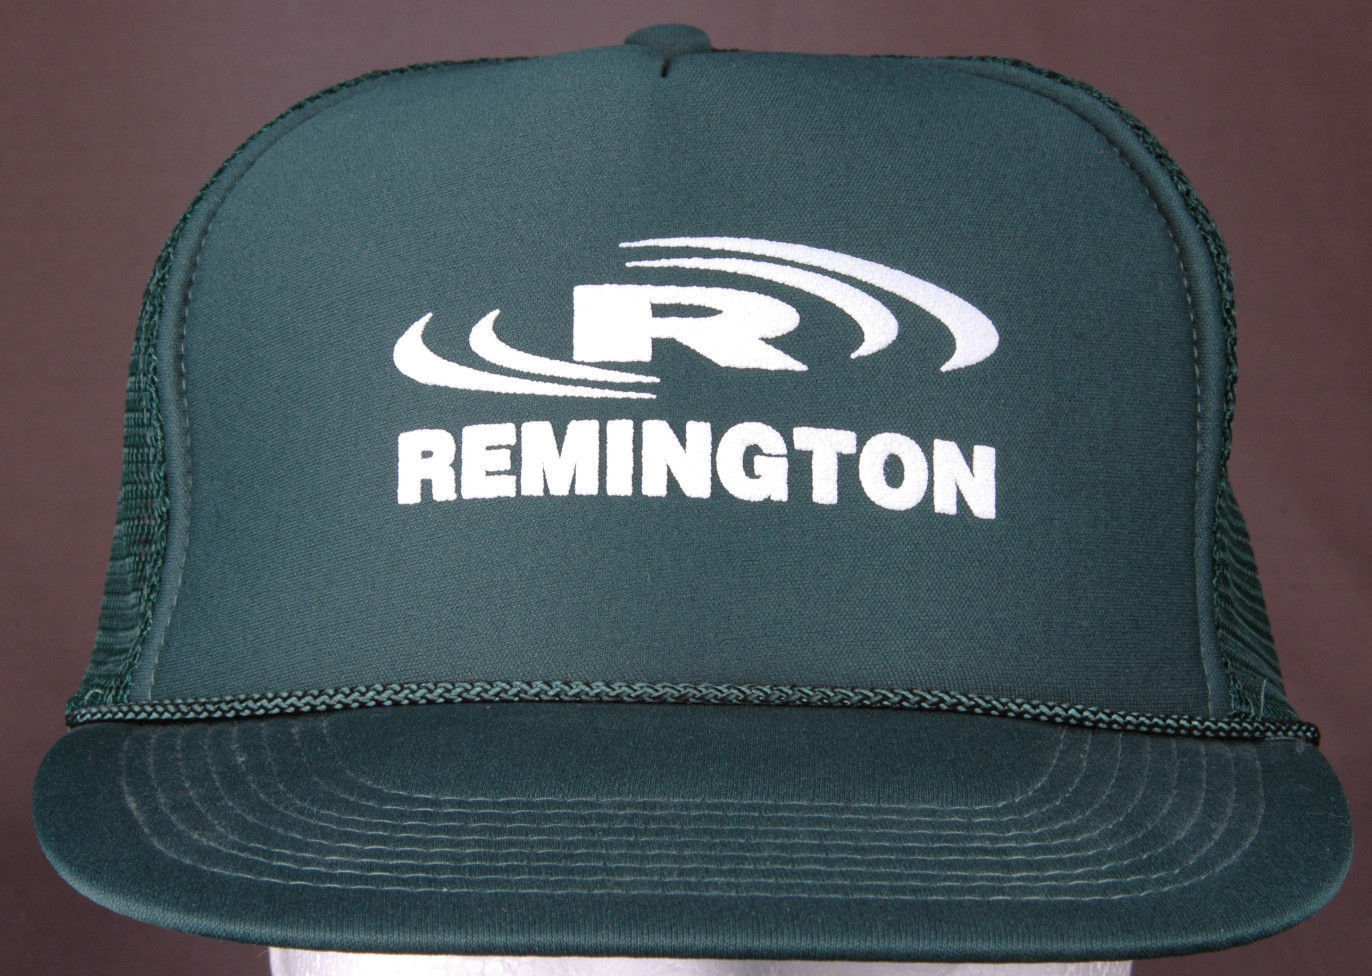 Primary image for Vtg Remington Tire Trucker Hat-Dark Green-Rope Bill-Mesh-Puff Letters-Snapback..